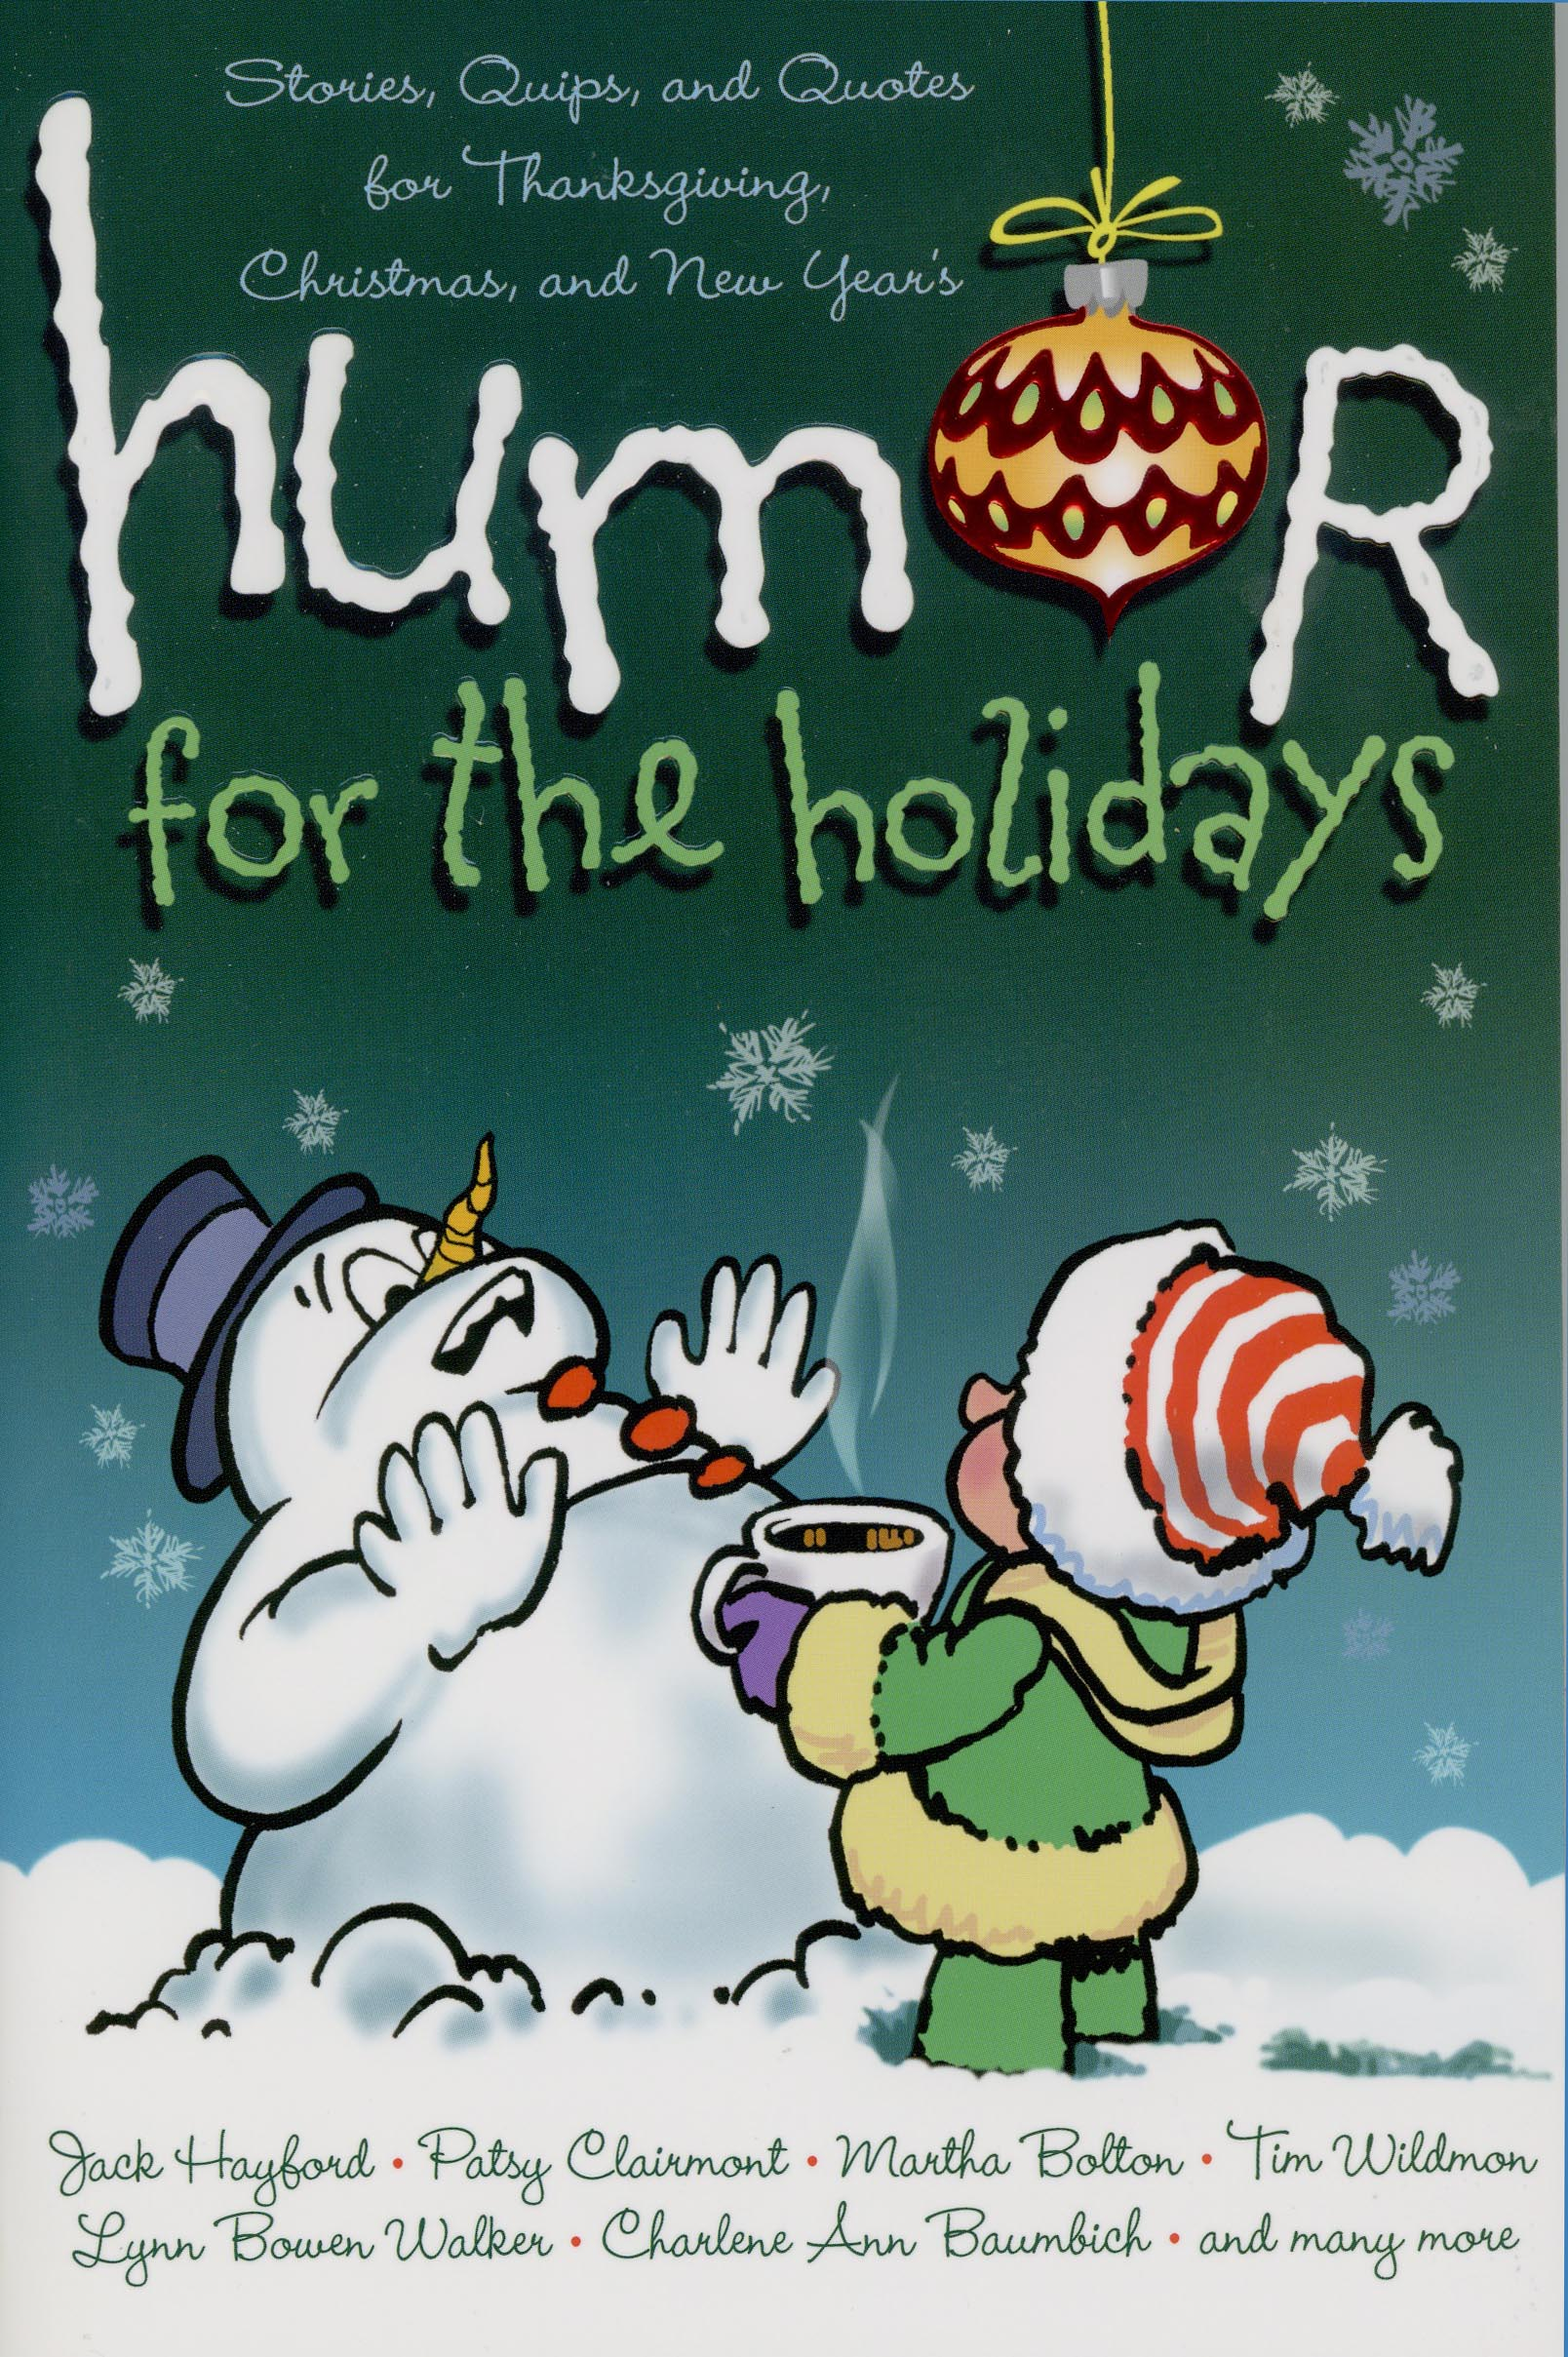 Quips N Quotes Humor For The Holidays  Bookshari Macdonald  Official